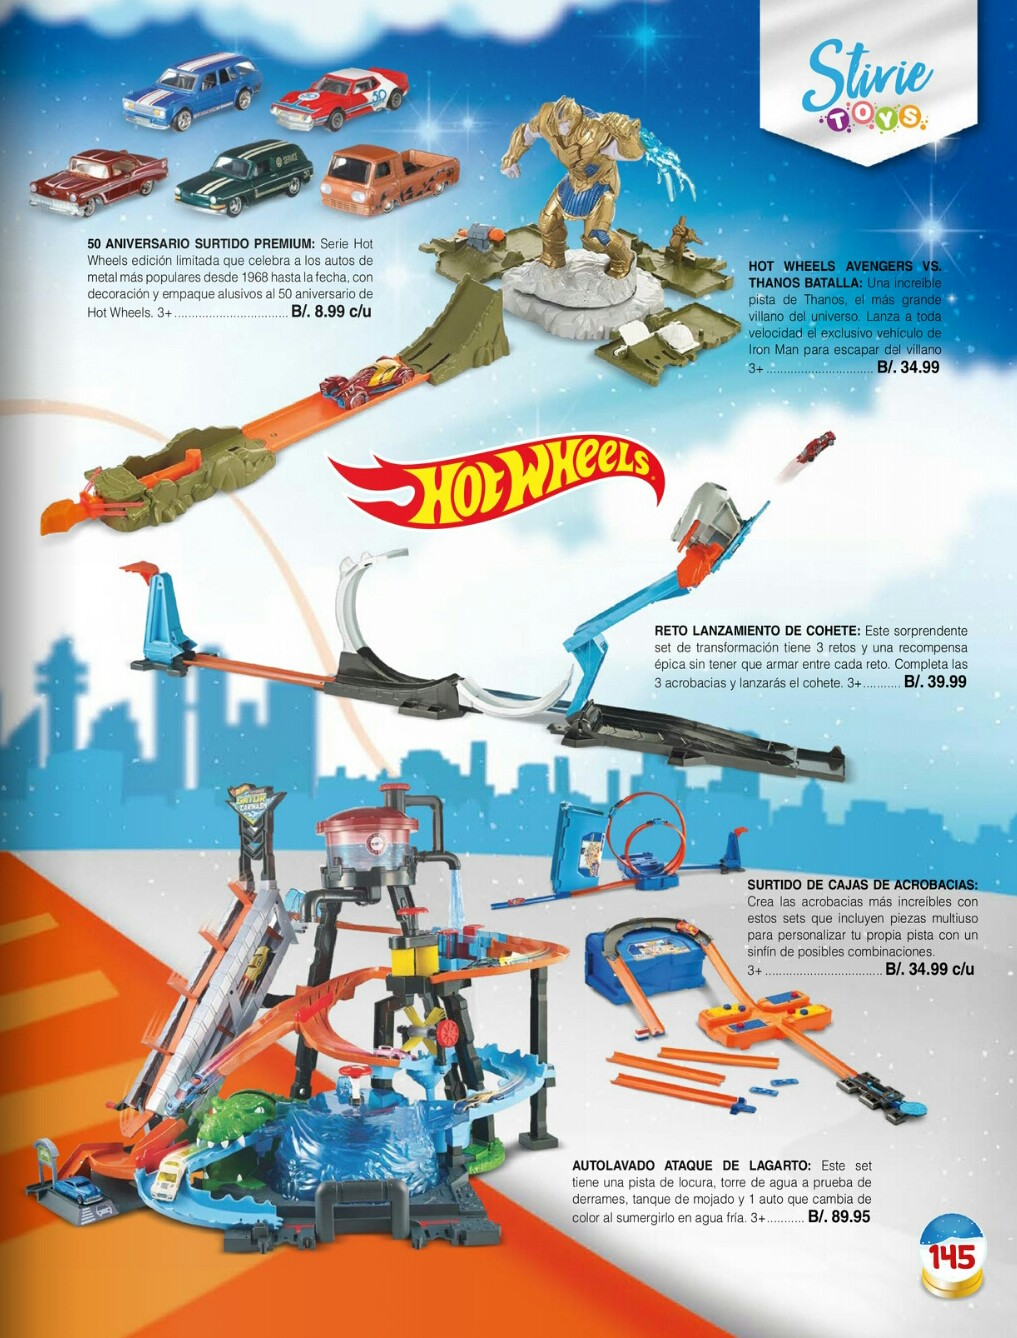 Catalogo juguetes Stivie toys 2018 p145